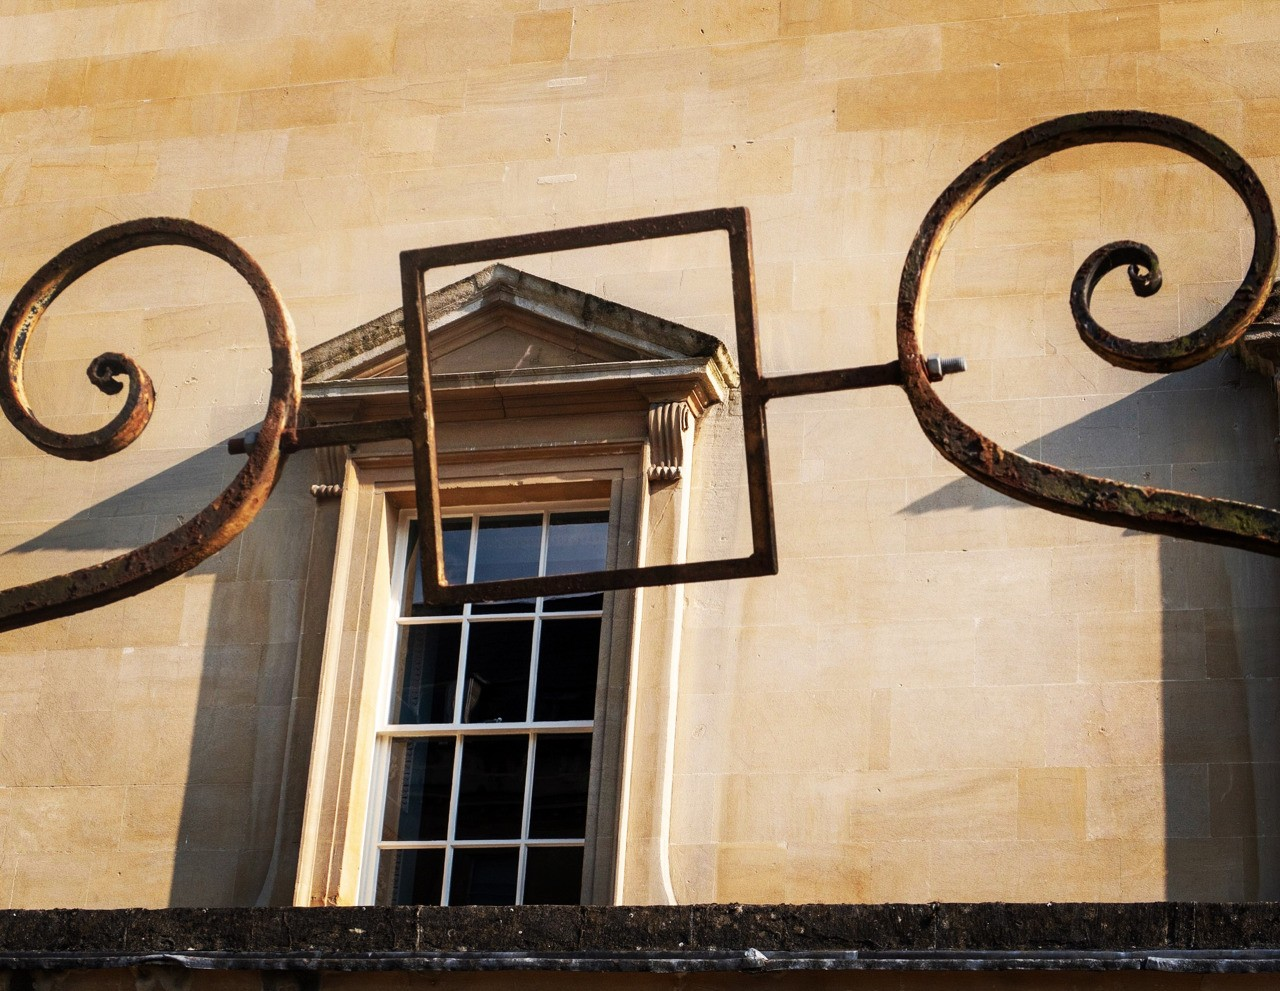 A visual depiction of the Fibonacci Principle in the world renowned centre for the golden section: Bath alternatively entitled: framed fenestration- follow me on Insta: @fotofacade